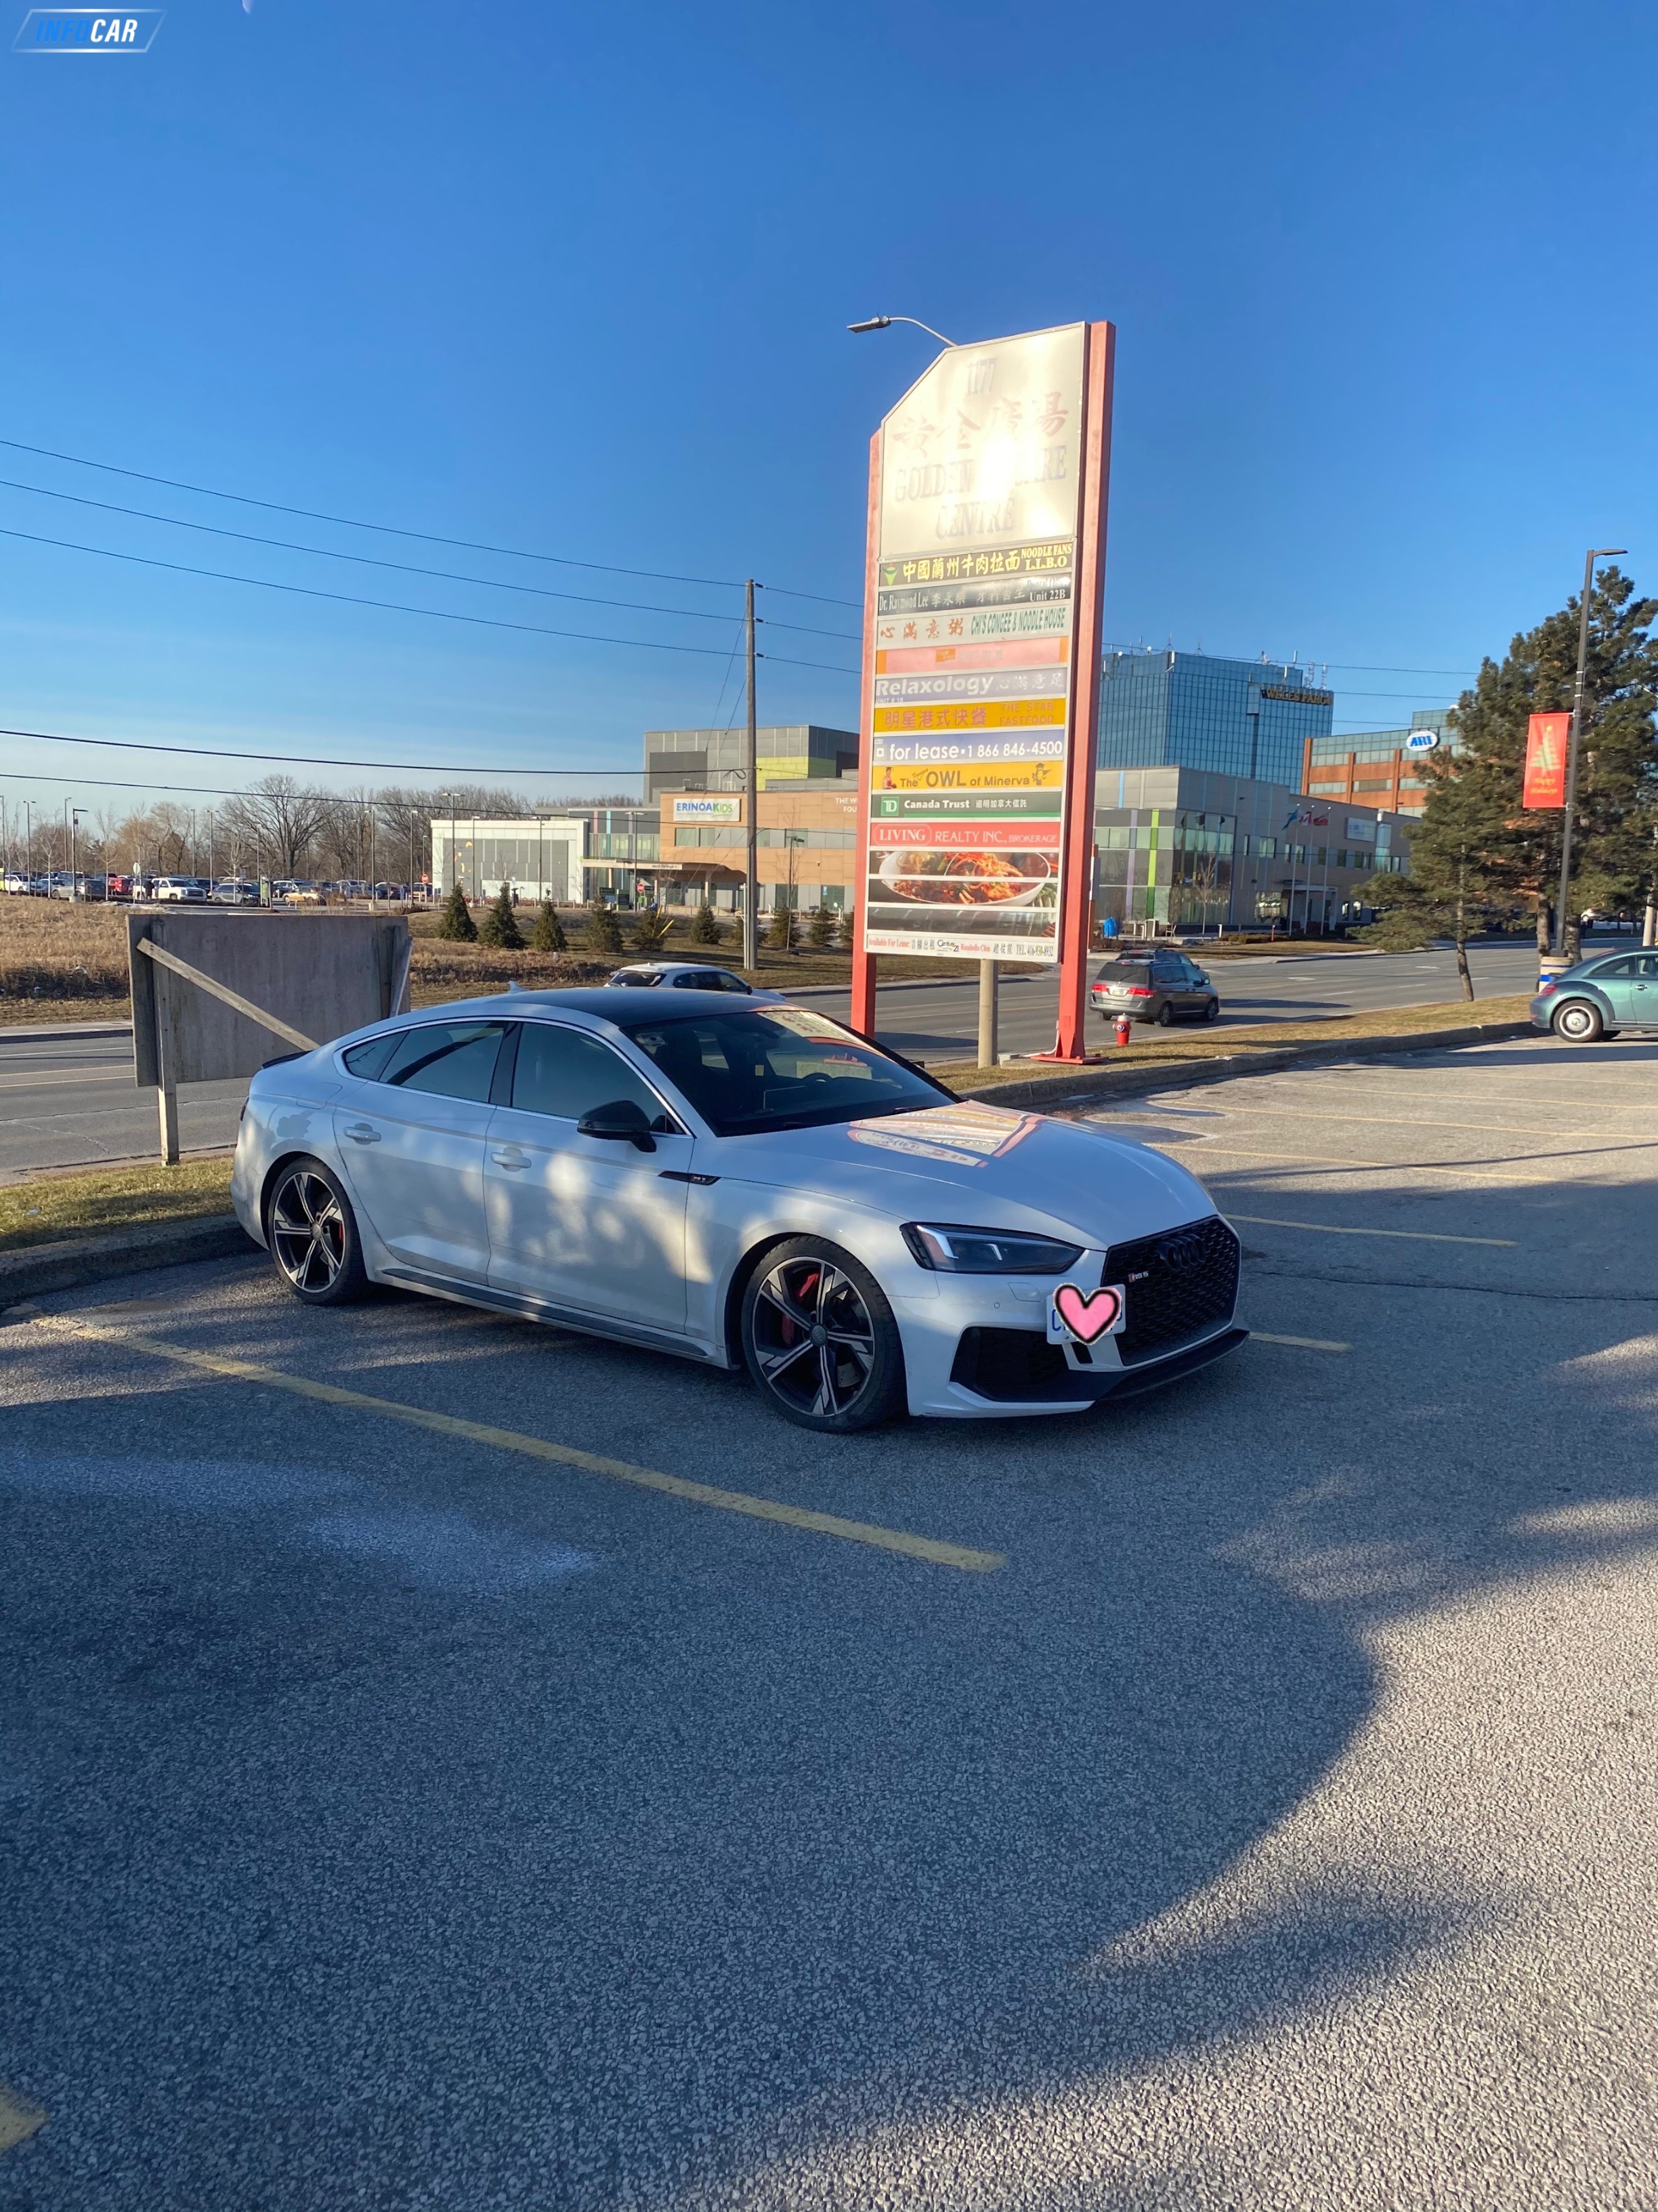 2019 Audi RS 5  - INFOCAR - Toronto's Most Comprehensive New and Used Auto Trading Platform